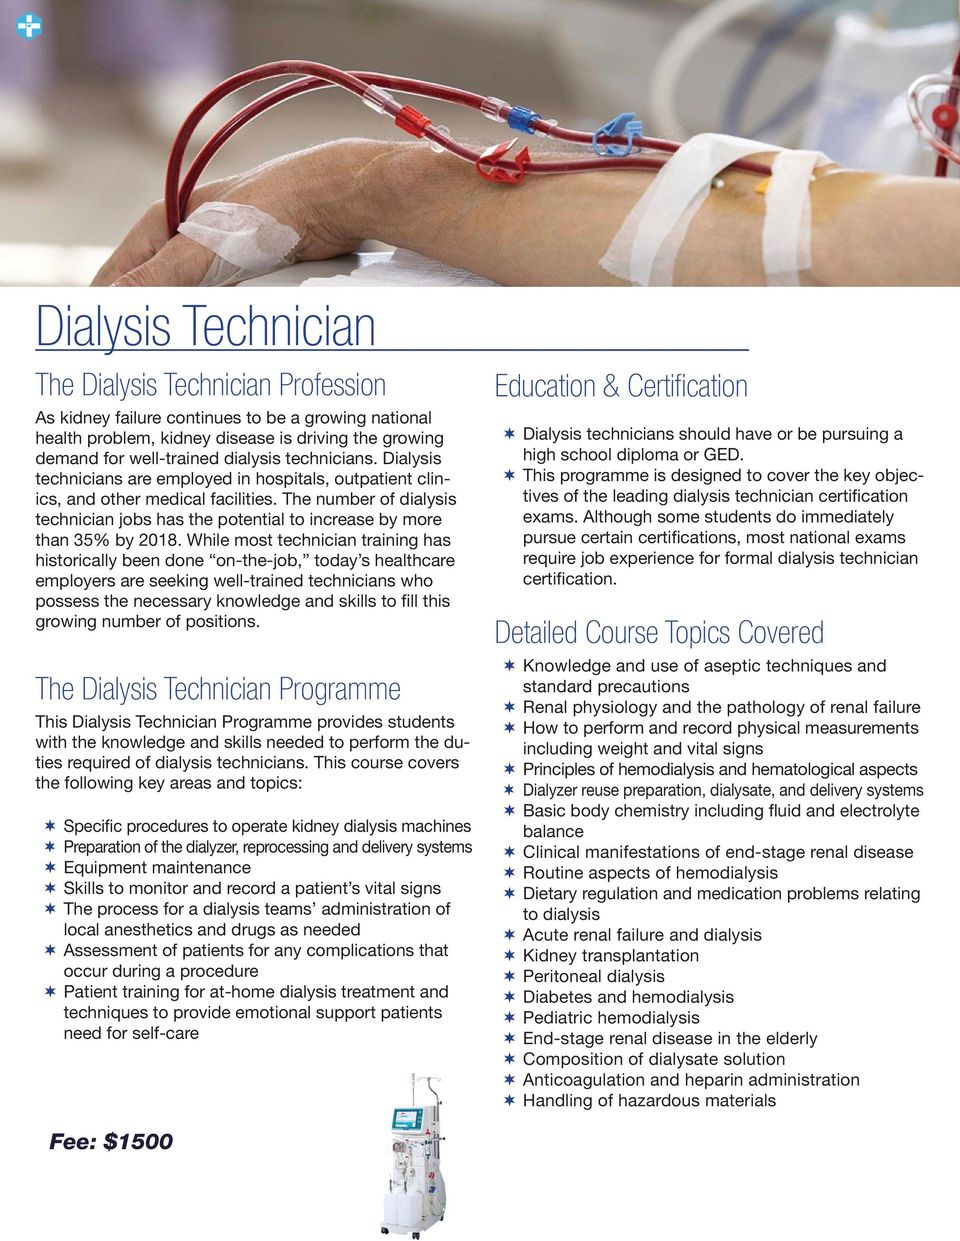 The number of dialysis technician jobs has the potential to increase by more than 35% by 2018.